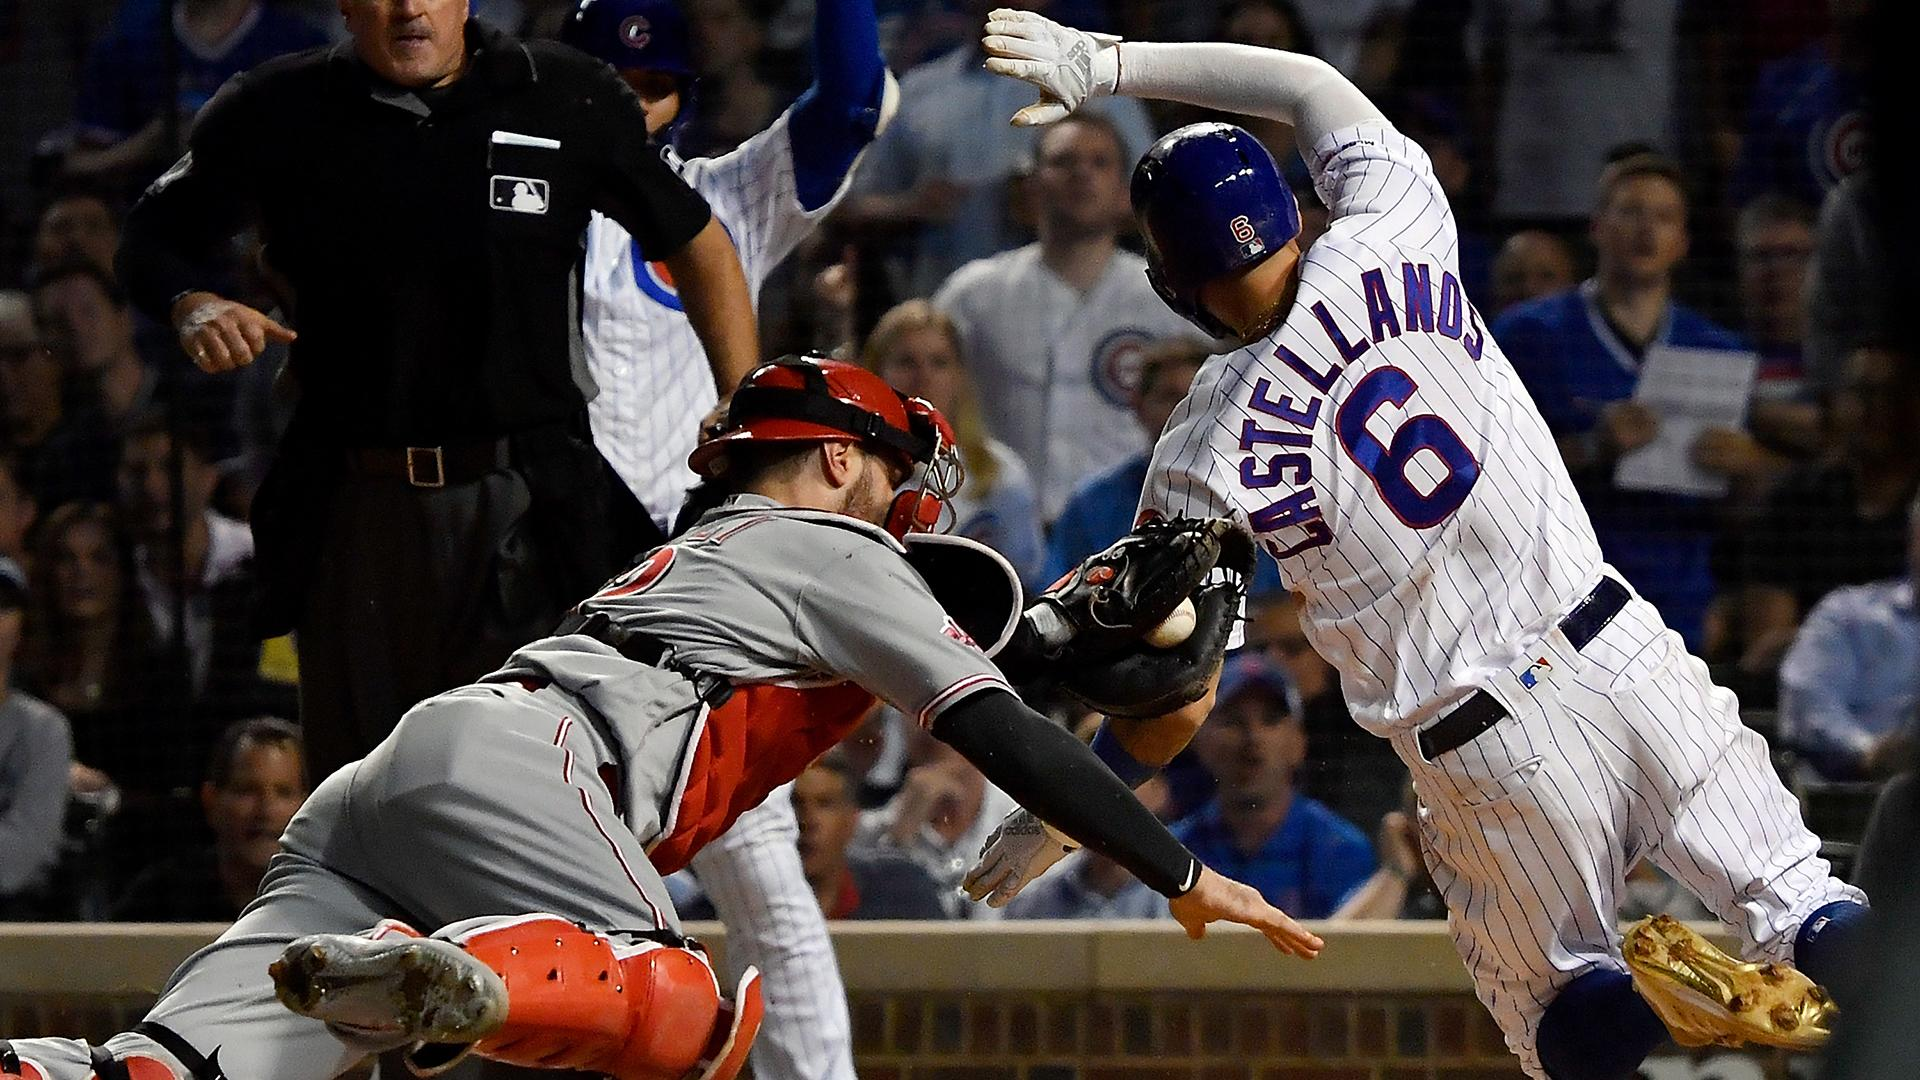 Cubs, Brewers remain deadlocked in NL wild-card race